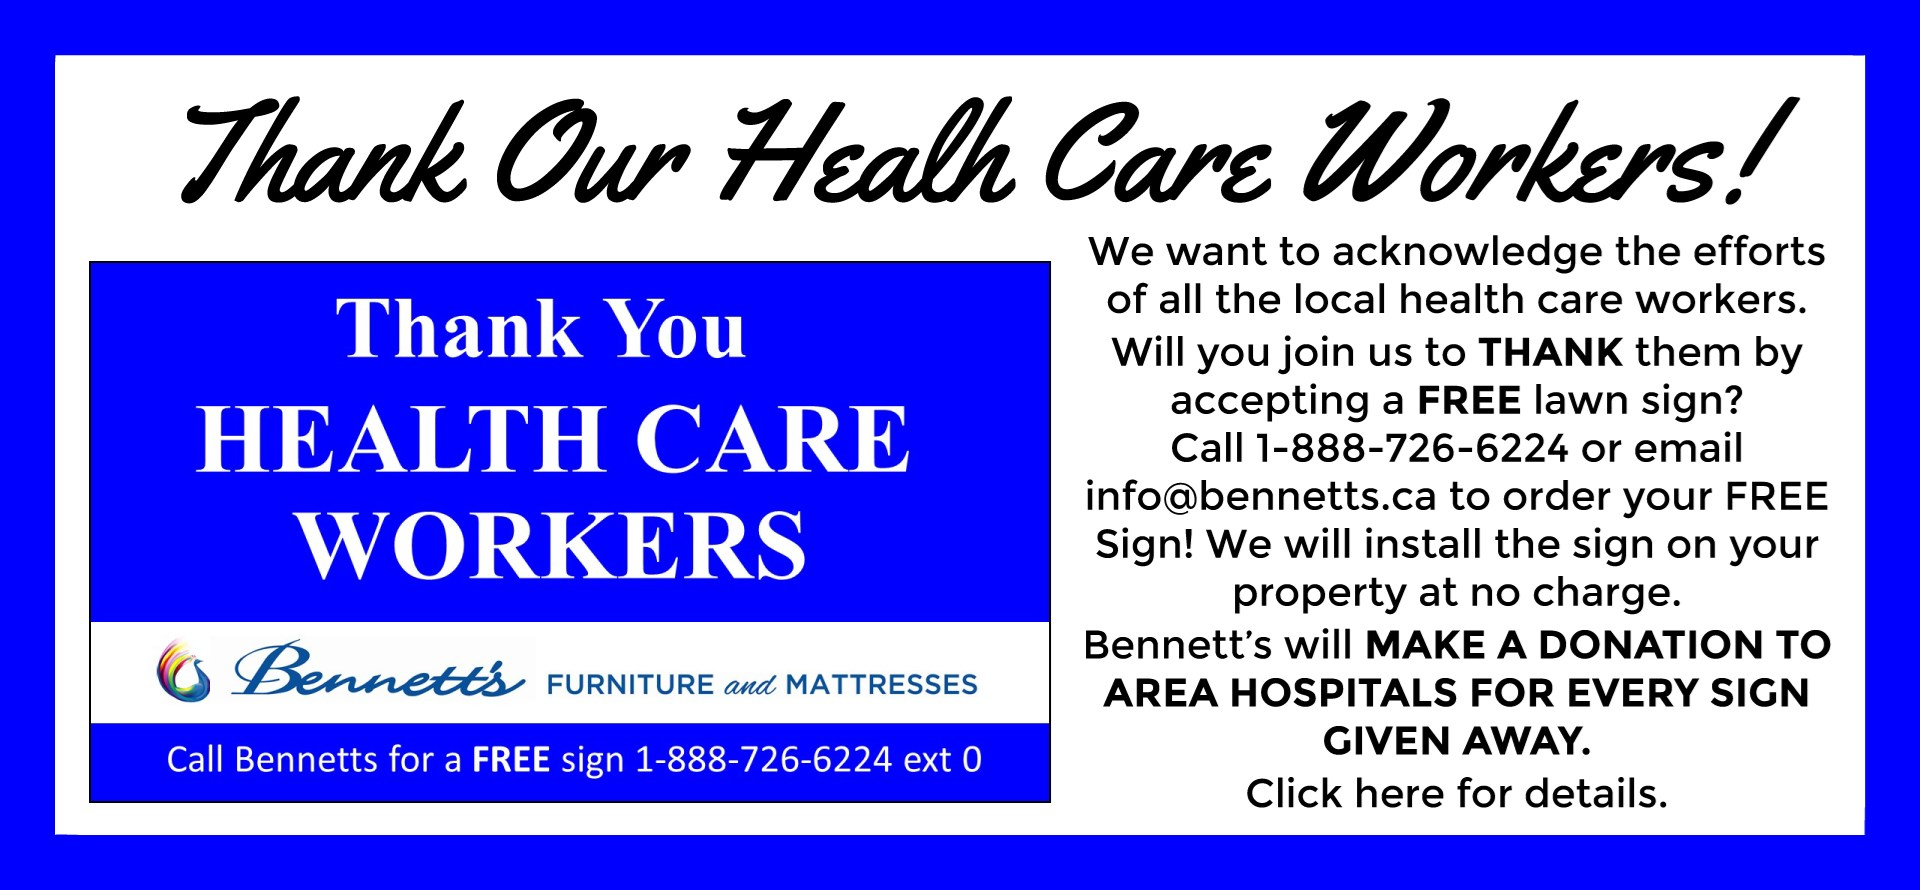 Thank You Health Care Workers!